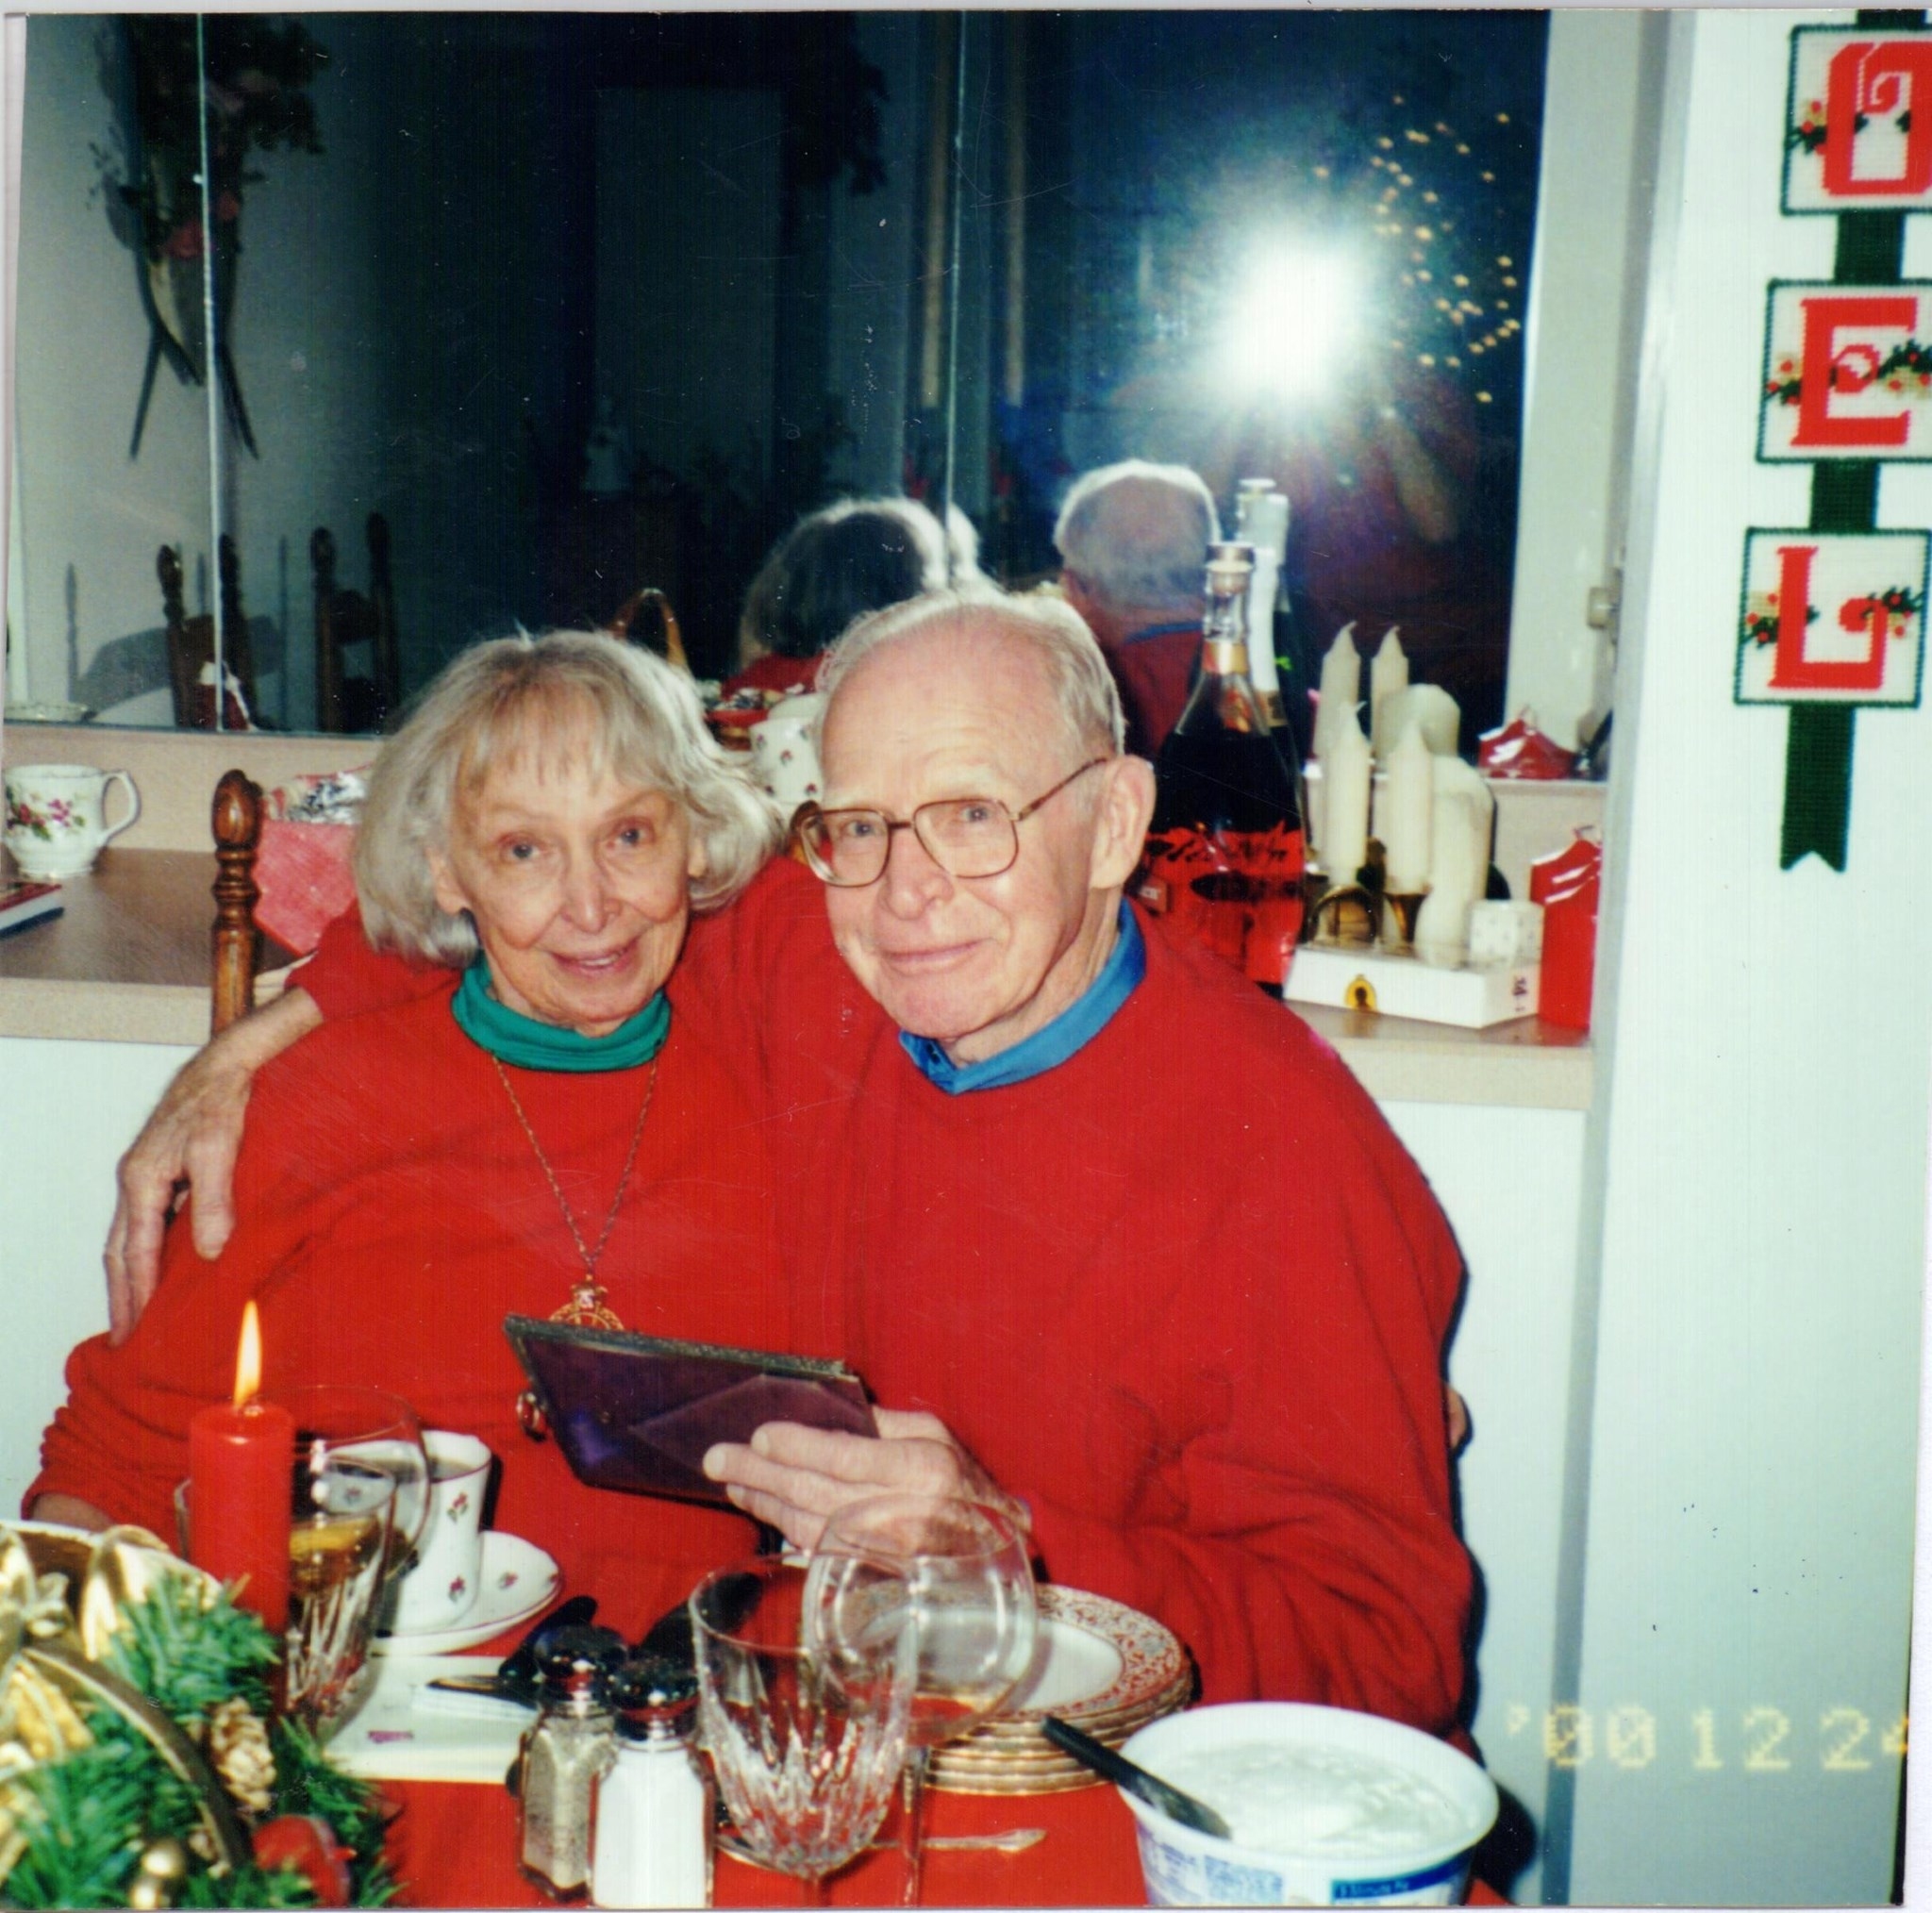 Bill and his sister, Xmas 2000